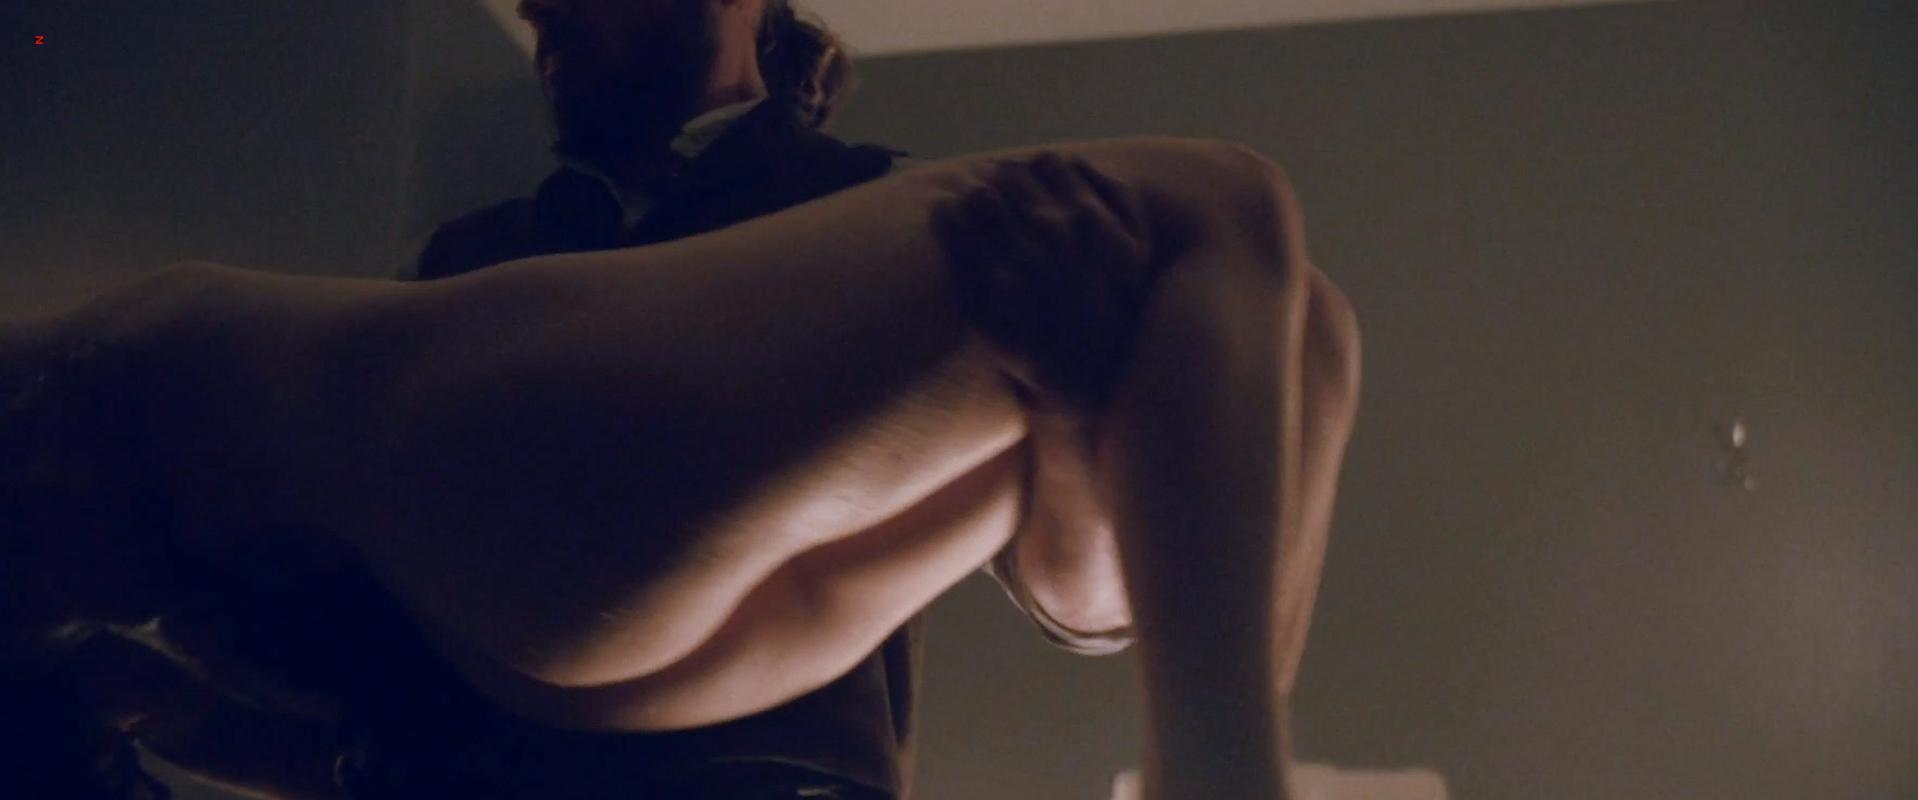 Emily Hampshire nude - Emily Hampshire nude boobs and nude butt in Die (2010)